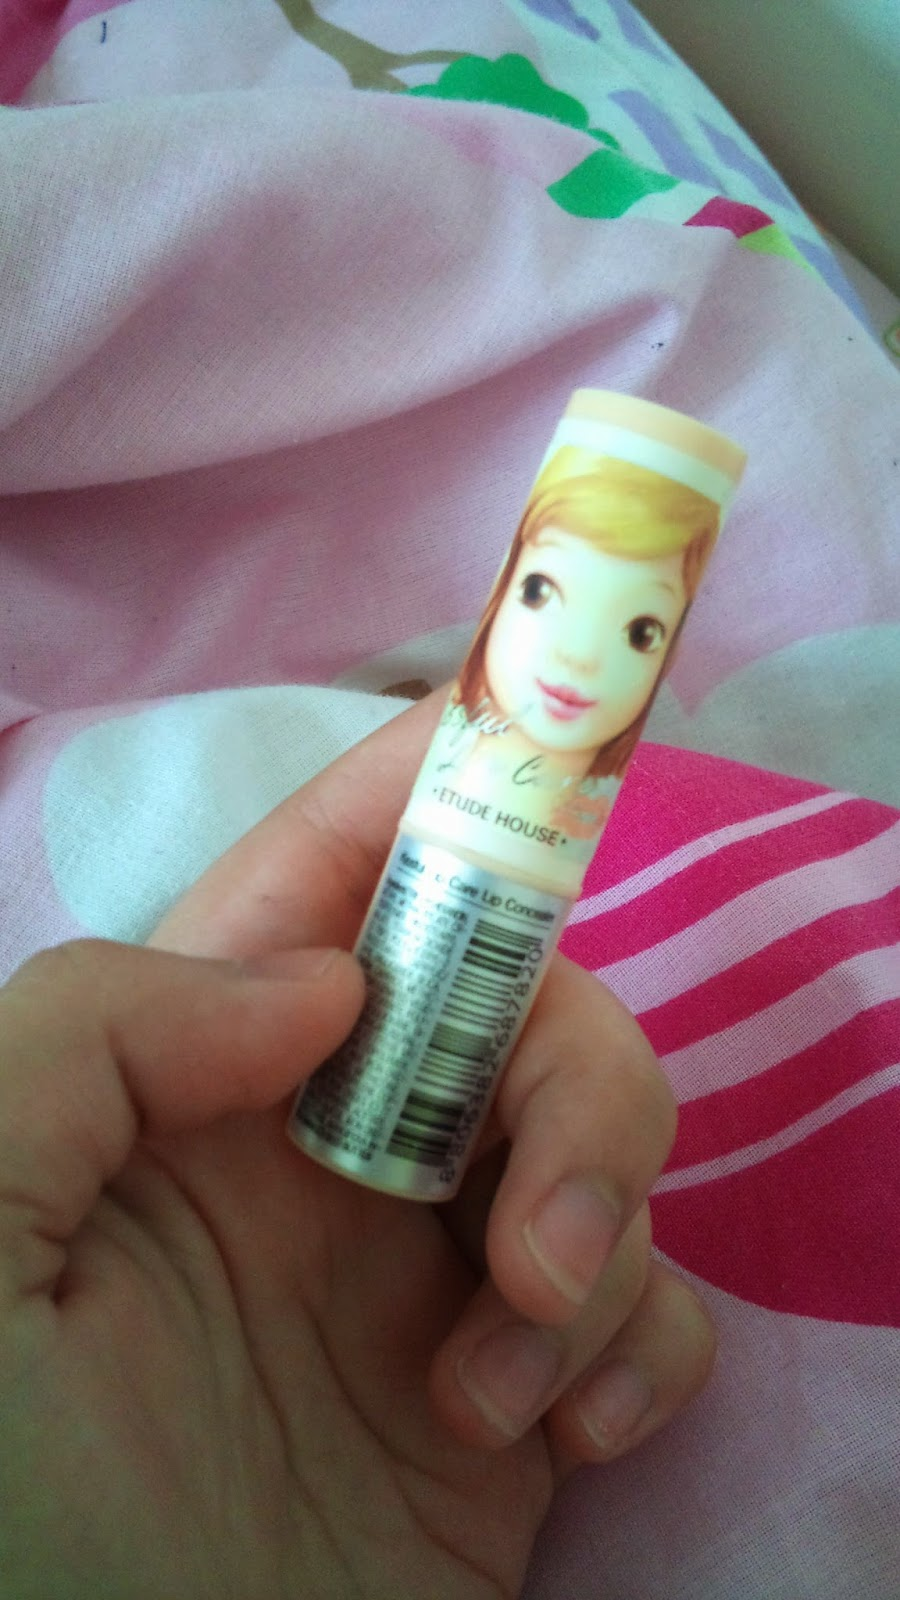 Phieselphie Etude House Kissful Lipcare Concealer Kissfull Lip Care